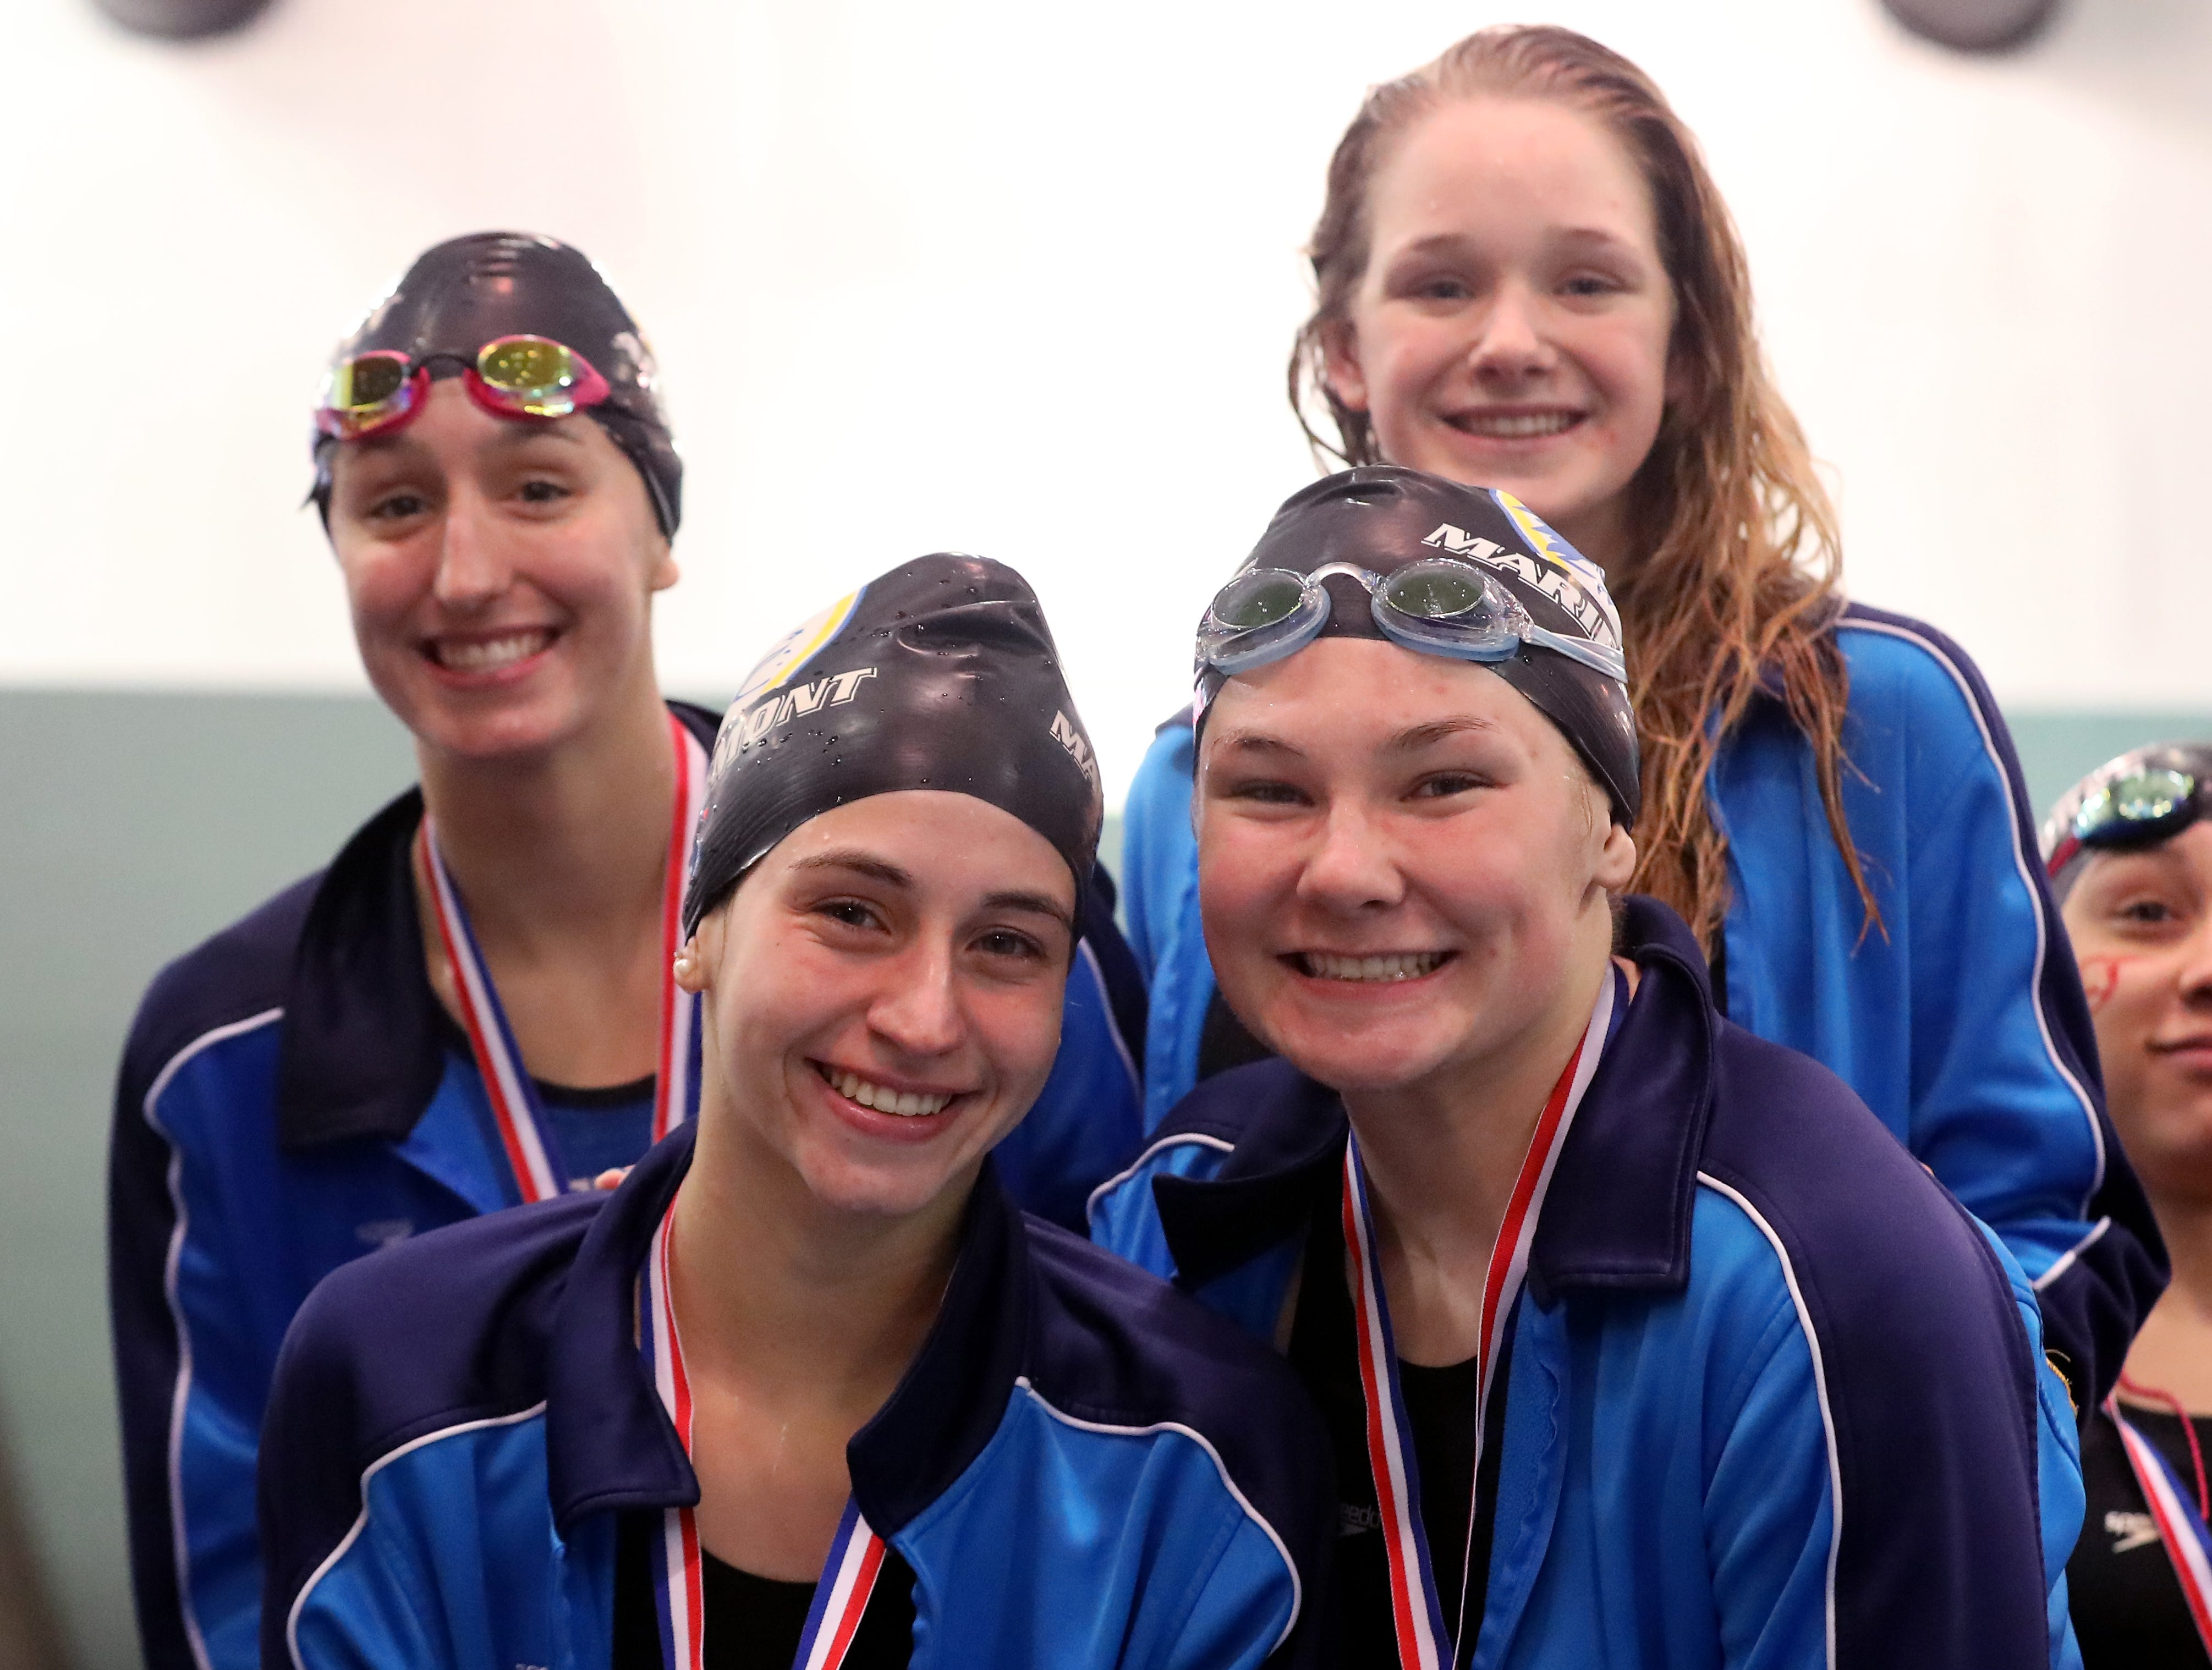 Members of the Mariemont girls 200 freestyle relay team with their medals at the OHSAA Swimming and Diving Championships in Canton, Ohio, Friday, Feb. 22, 2019